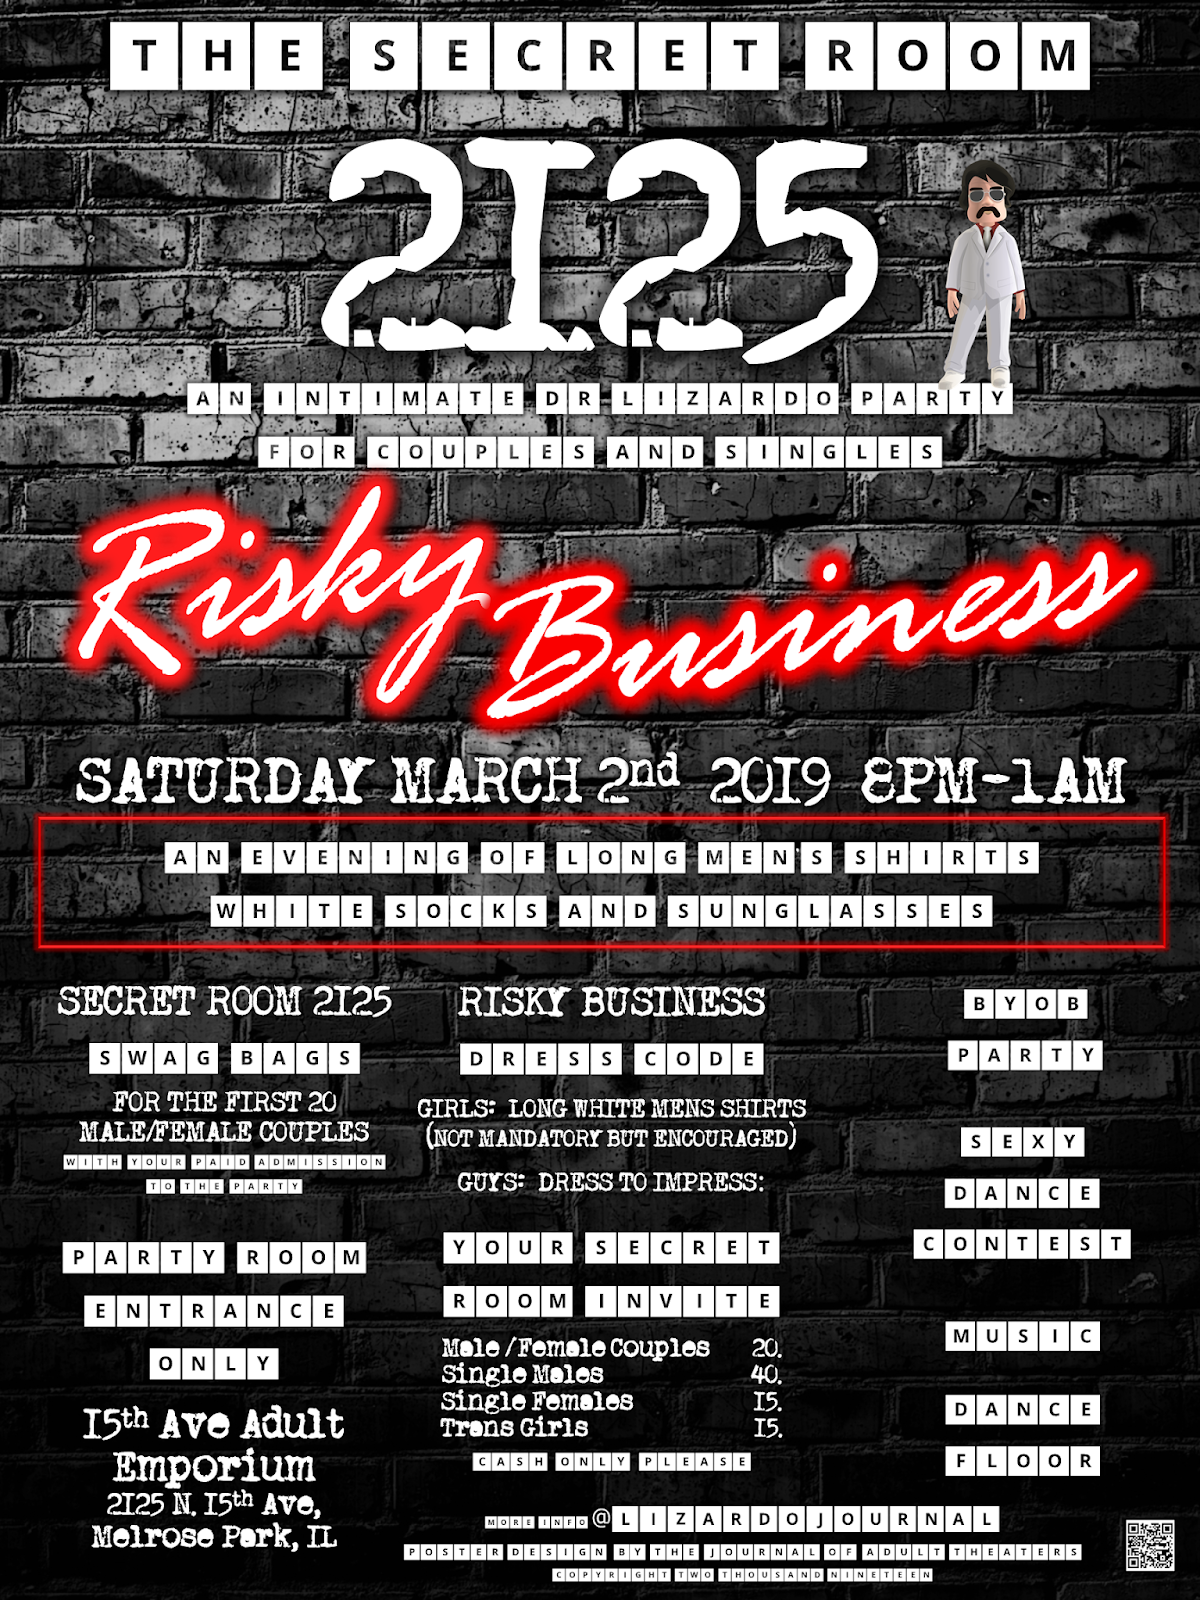 Secret Room 2125: Risky Business Party at 15th Ave.Adult Theater Party Room in Chicago...